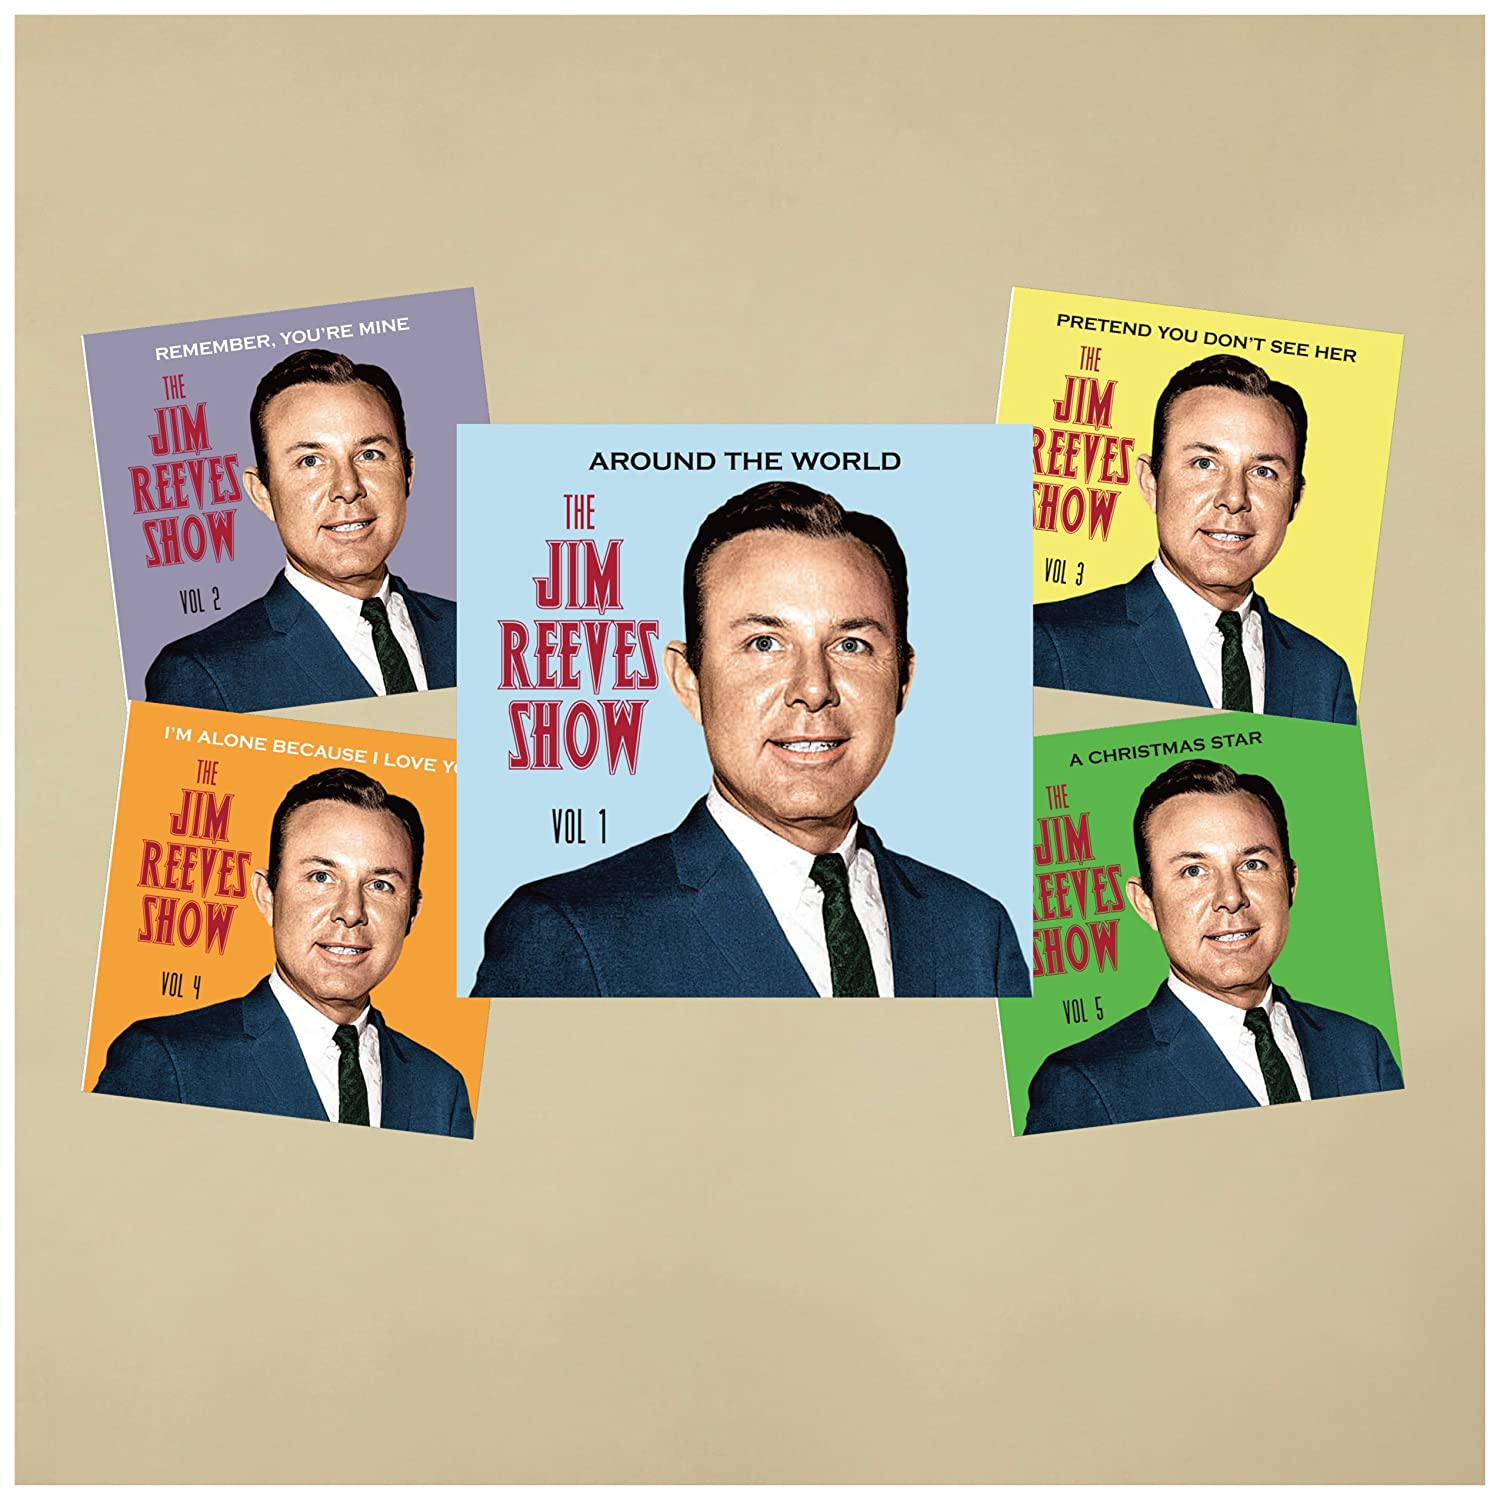 Jim Reeves - The Jim Reeves Show 5 CD set (New release!) - Amazon ...